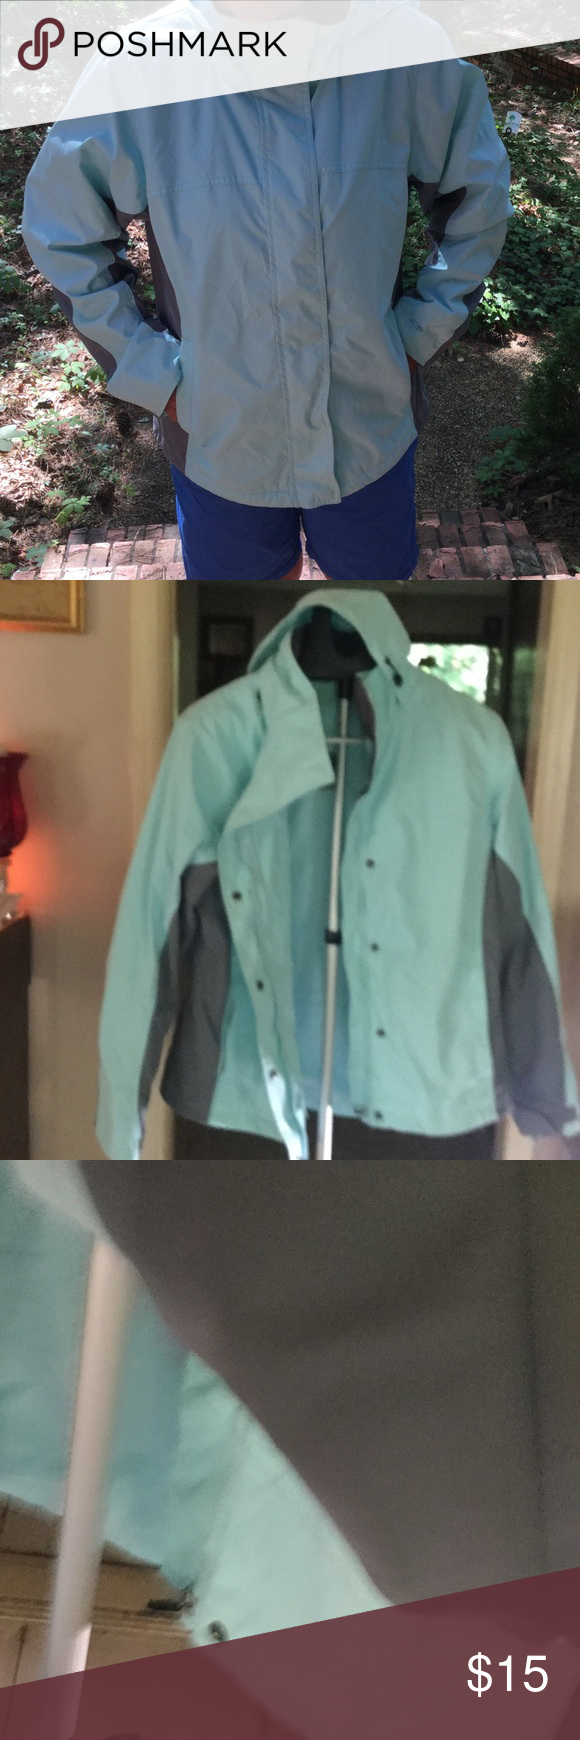 Jacket Nylon but lined wind breaker jacket with lots of details hat adjustable cuffs hidden zipper inside and a lot more closure buttons and zipper . New never worn offers are welcome as I am going back home have no space . Thanks Champion Tops Sweatshirts & Hoodies